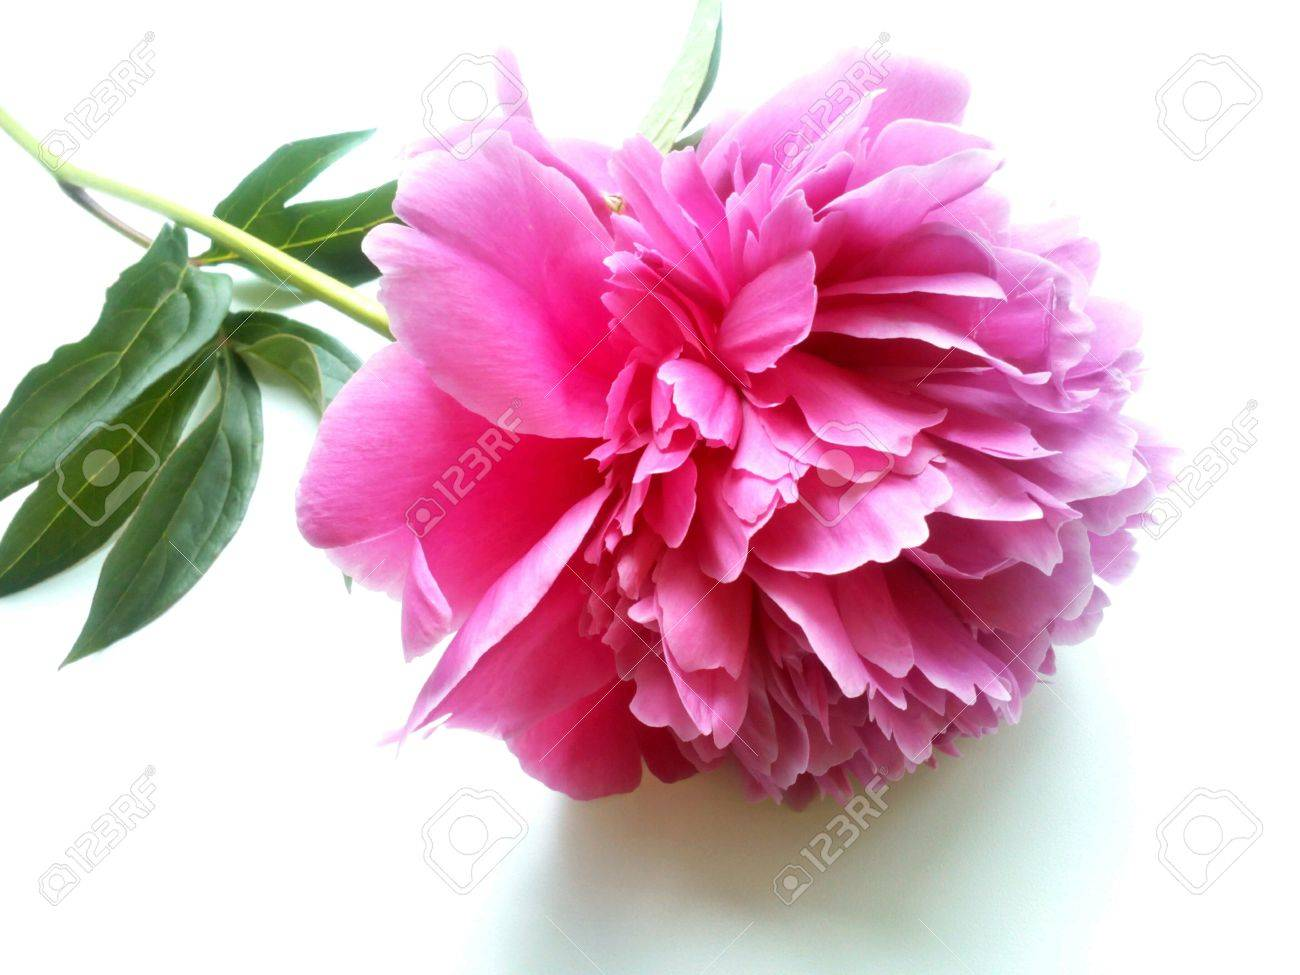 Pink peony flower on a white background stock photo picture and pink peony flower on a white background stock photo 42229413 mightylinksfo